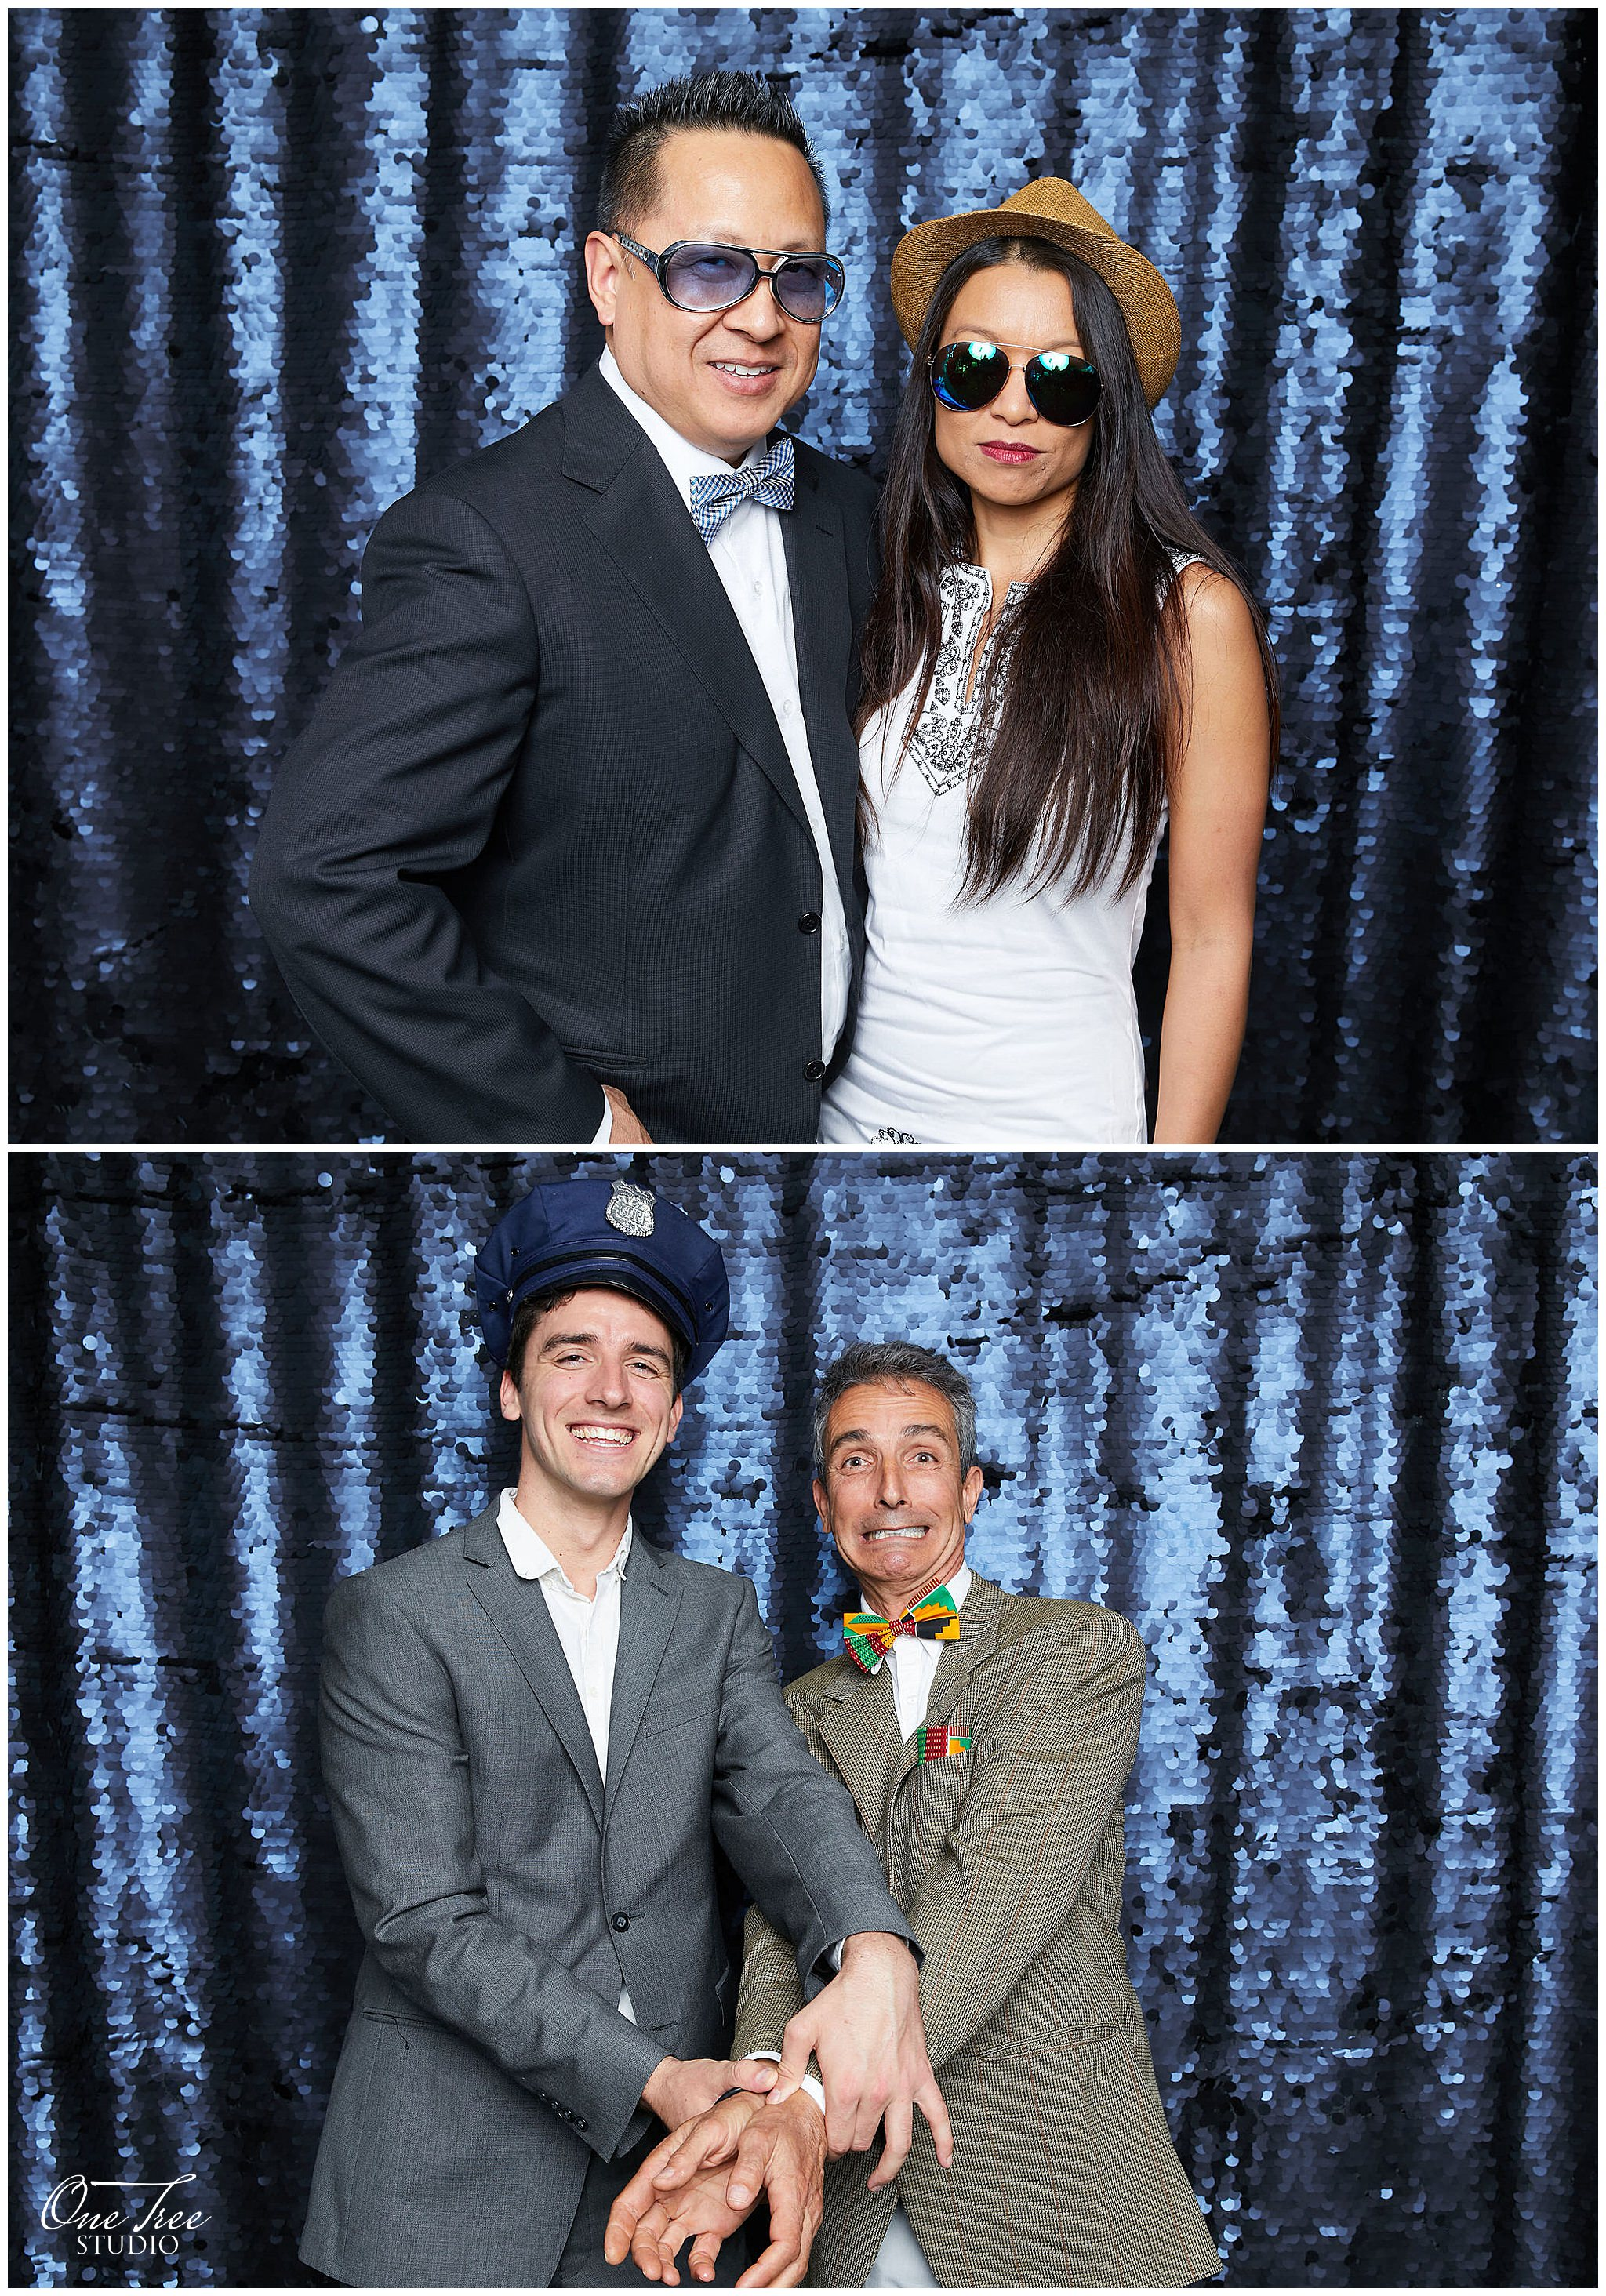 The Manor Photo Booth